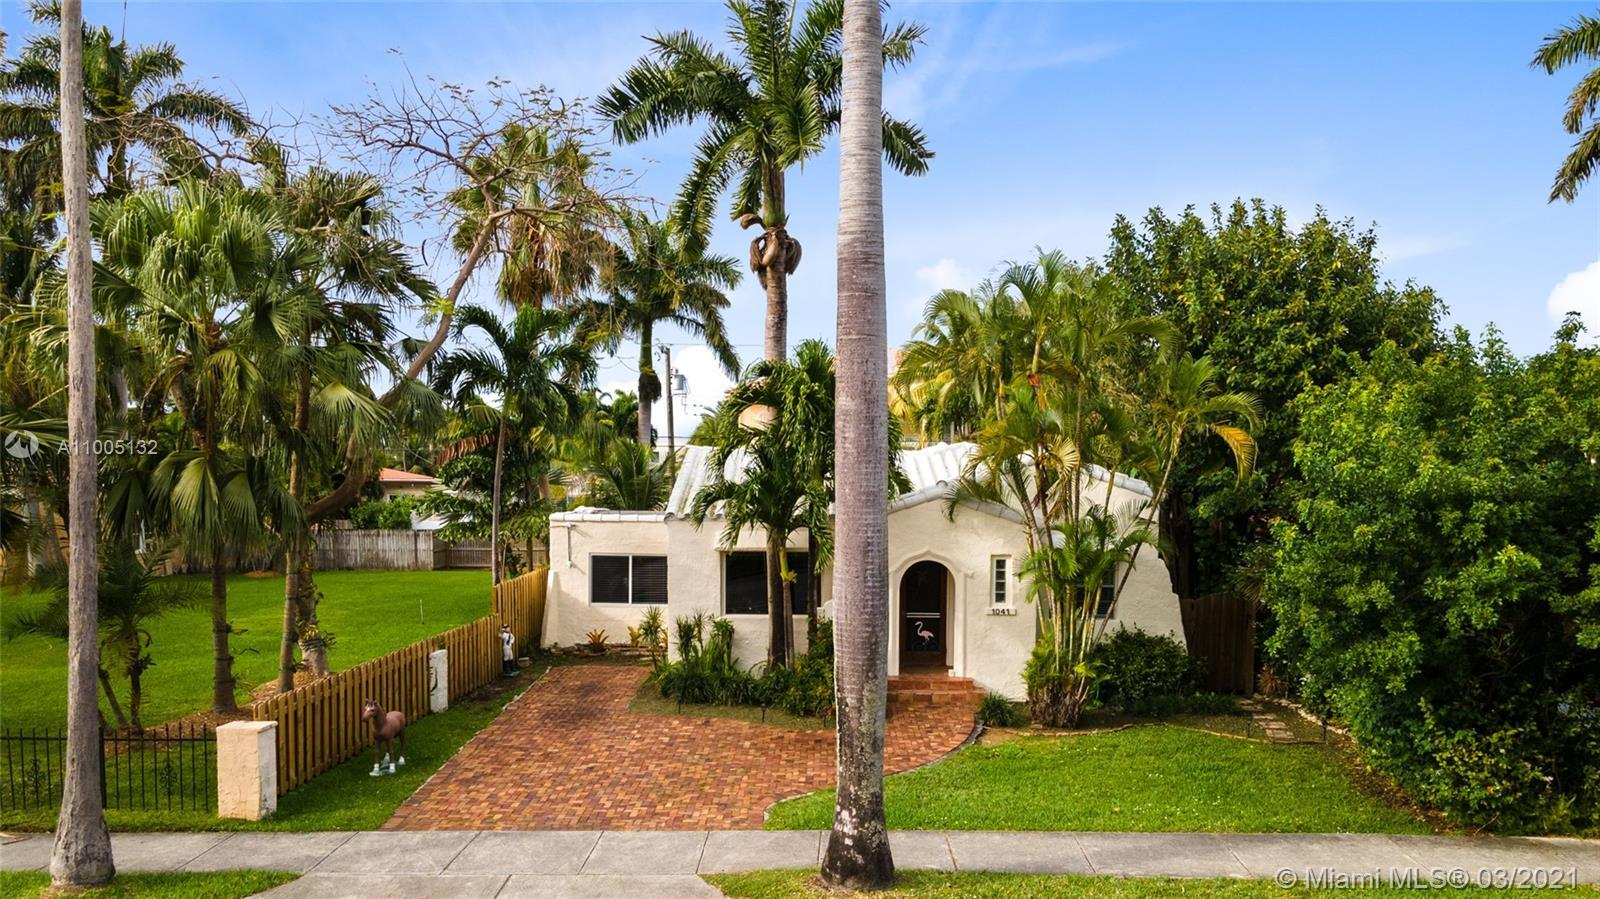 Amazing opportunity to own an original Hollywood Lakes Mediterranean Revival home. Built in 1924 its